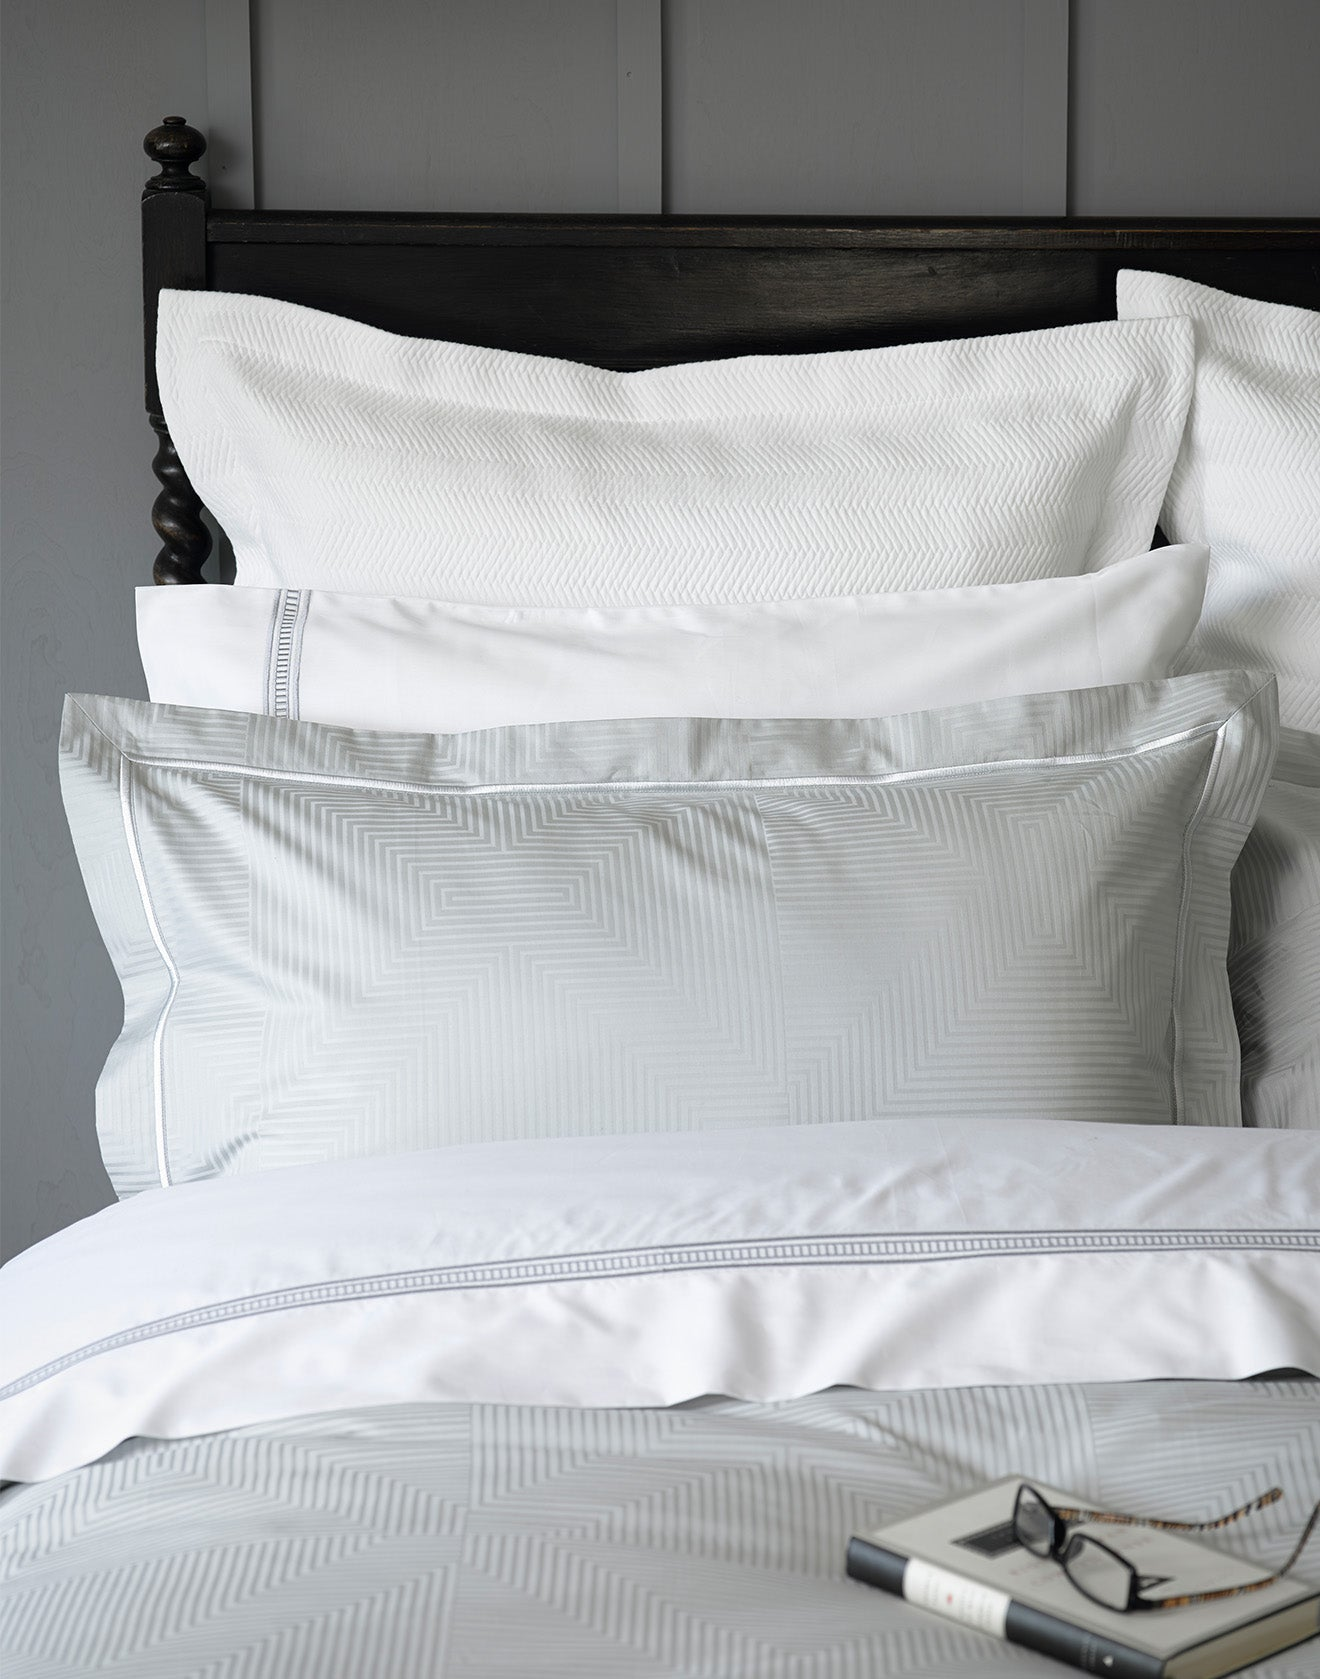 Enigma Silver and white luxury bedding pillows and duvet set from CHristy